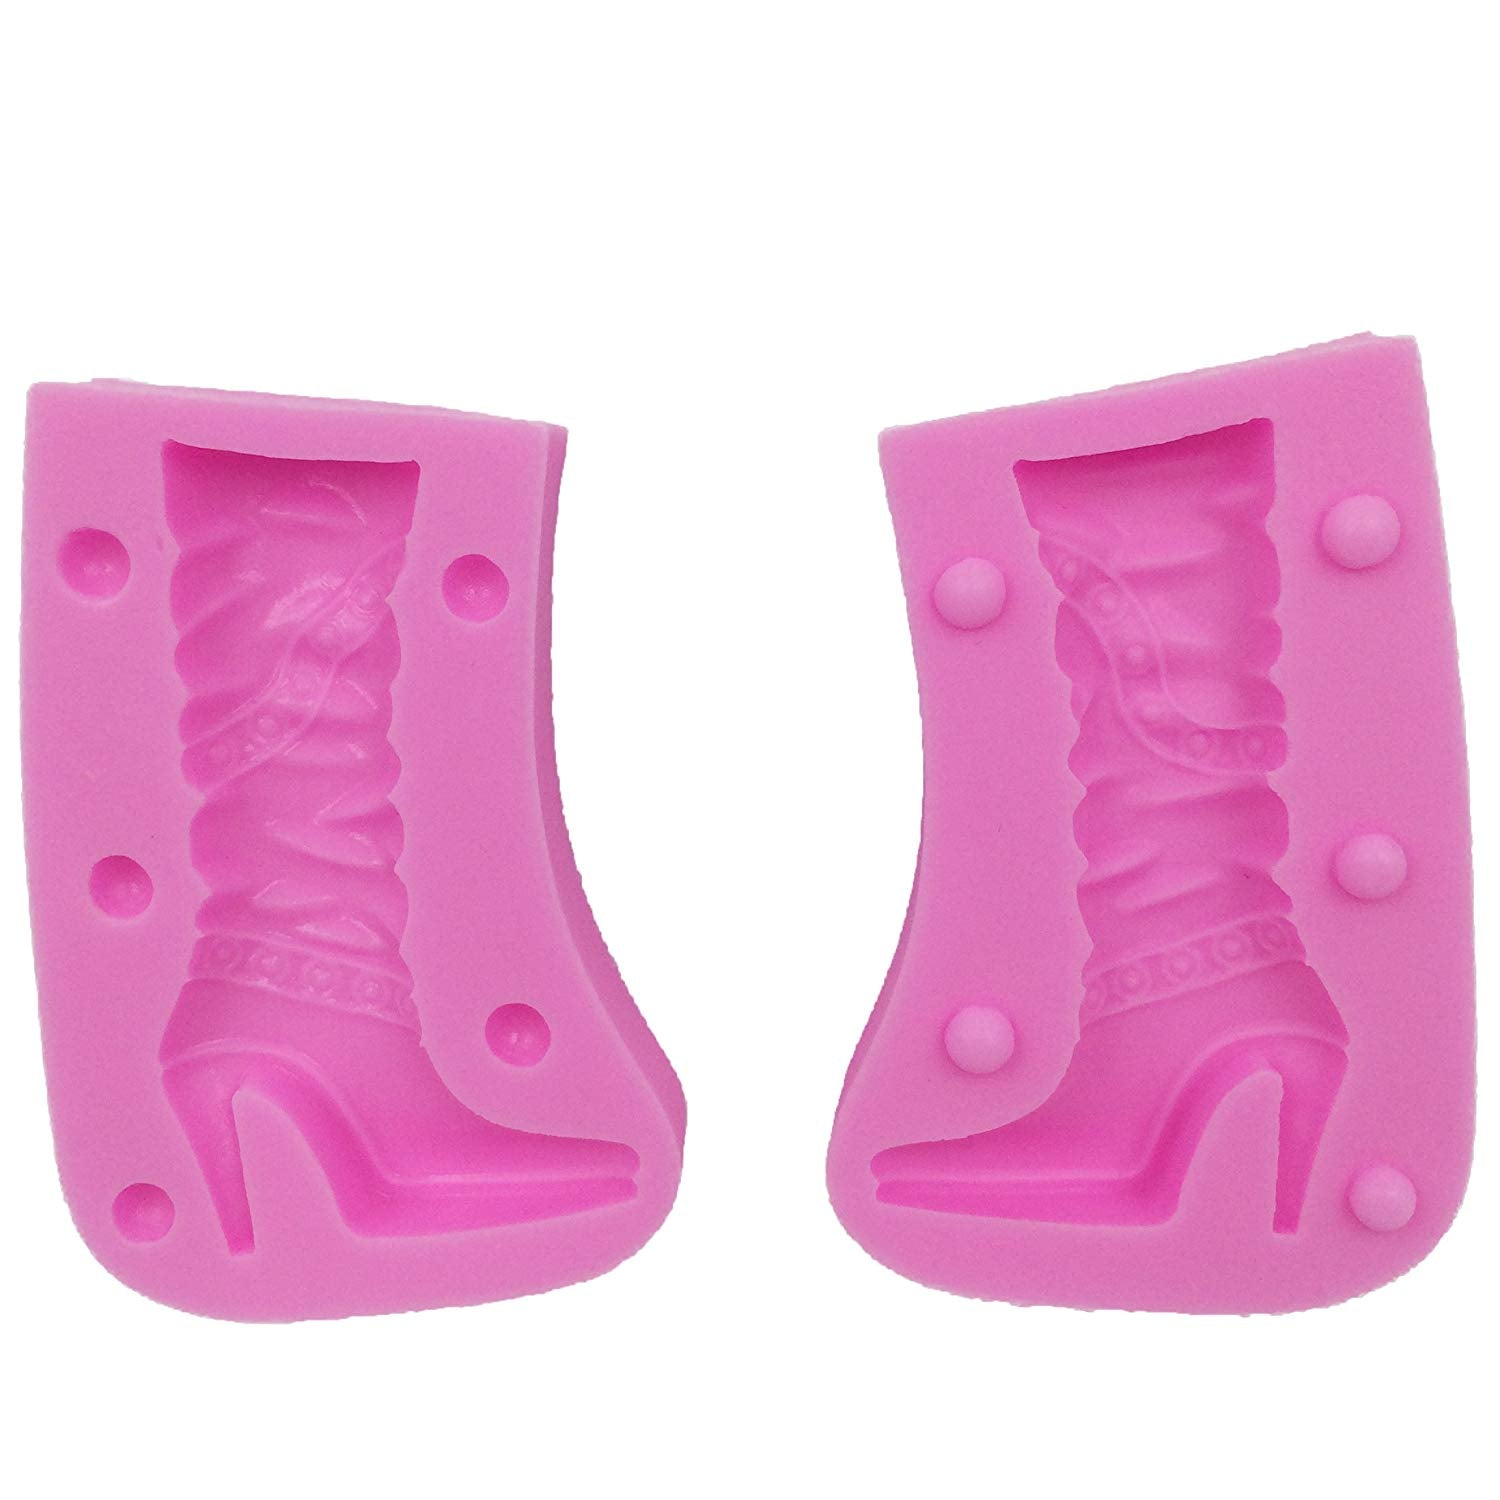 3D High Heel Boots Fondant Silicone Mold